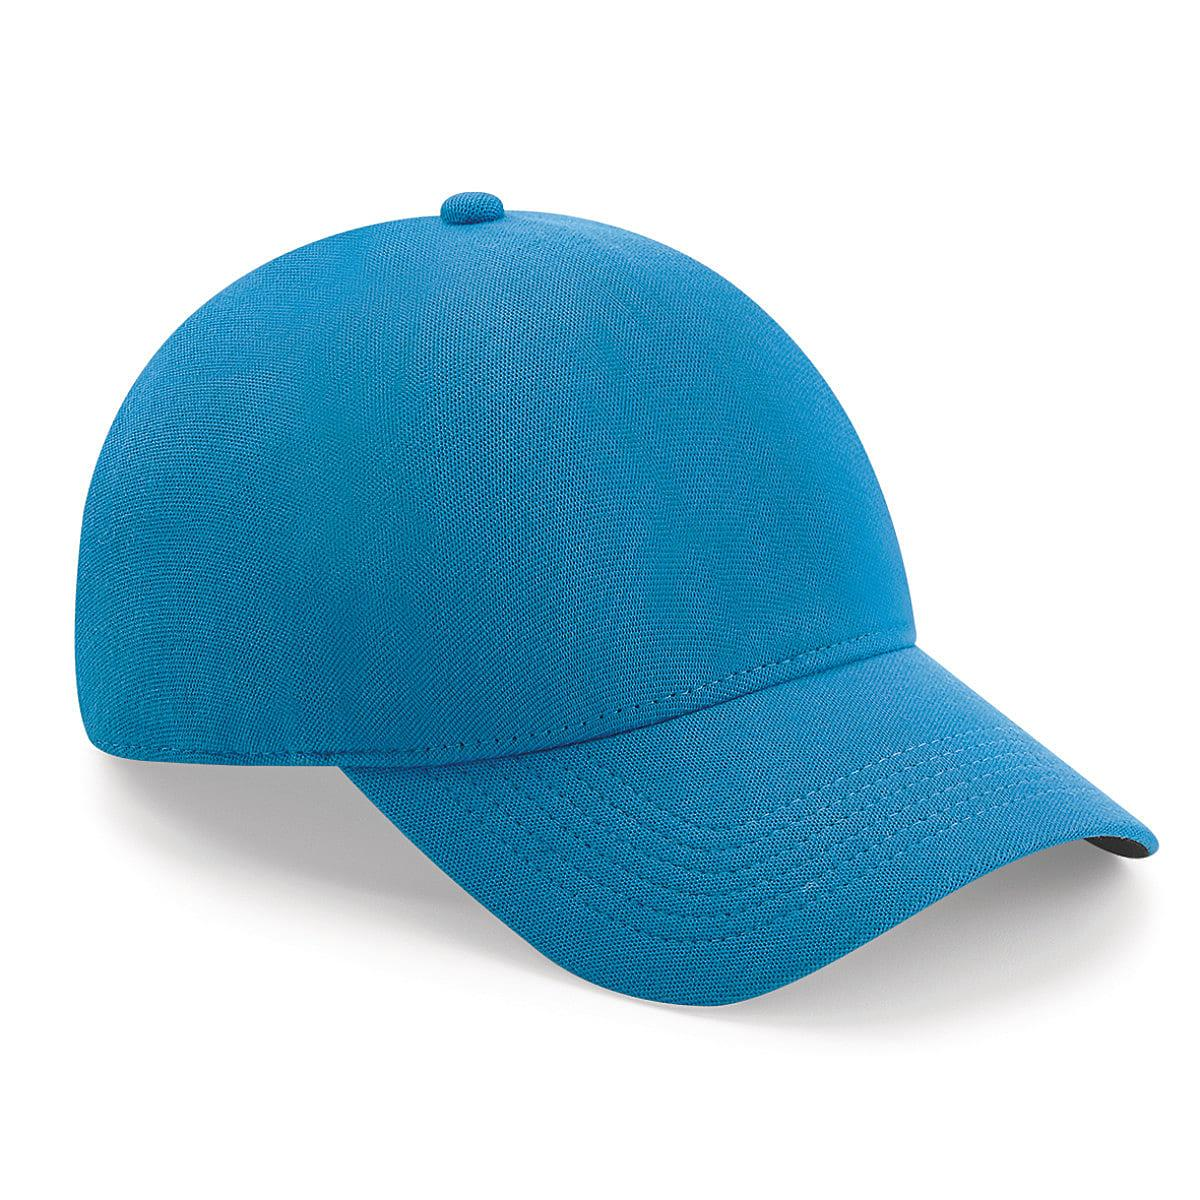 Beechfield Seamless Waterproof Cap in Sapphire (Product Code: B550)